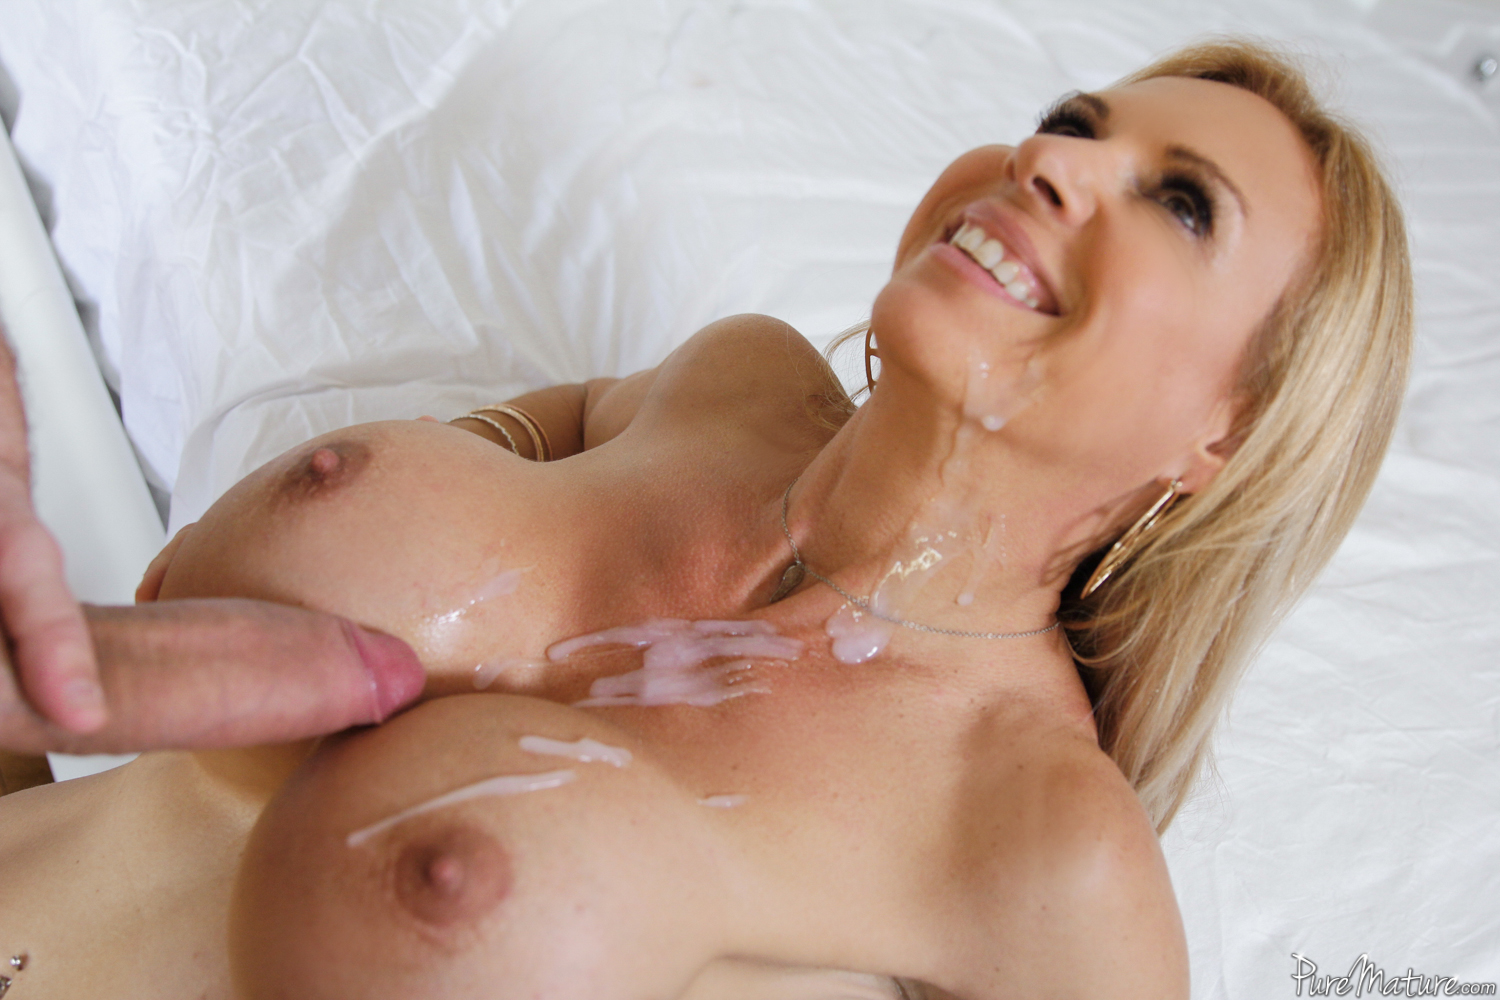 Free milf video streaming